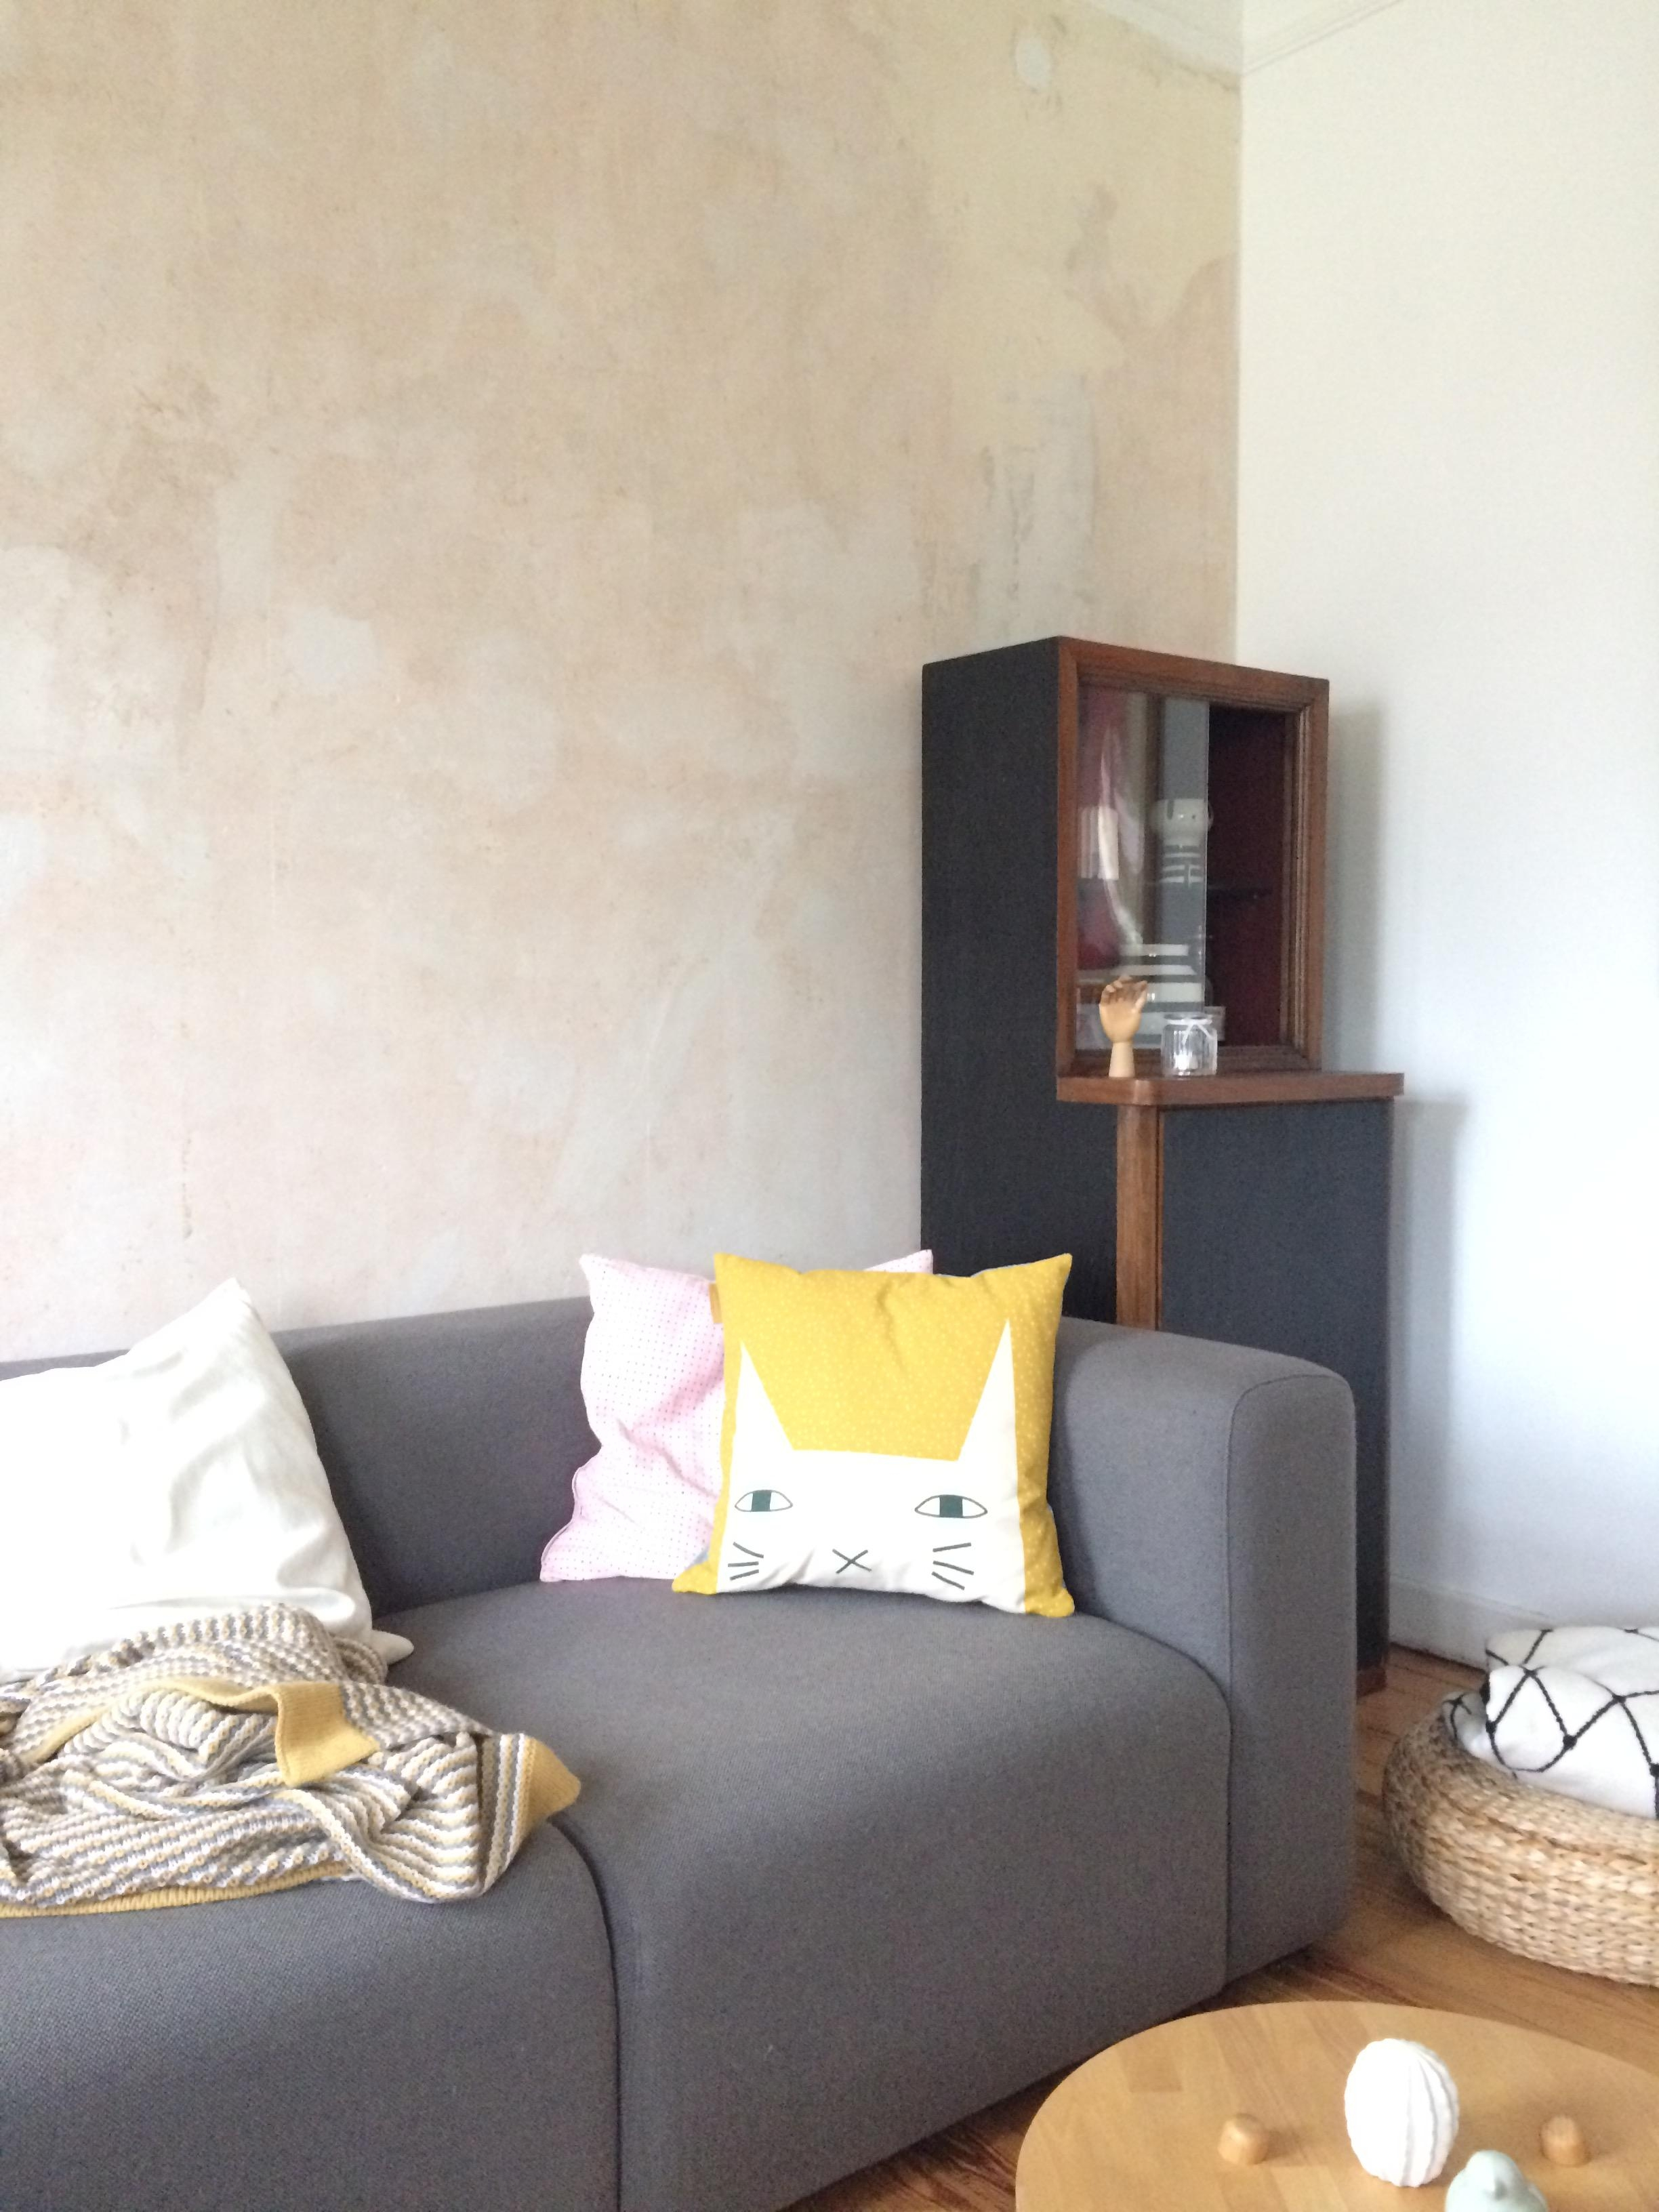 Wandgestaltung Bilder wandgestaltung bilder ideen couchstyle